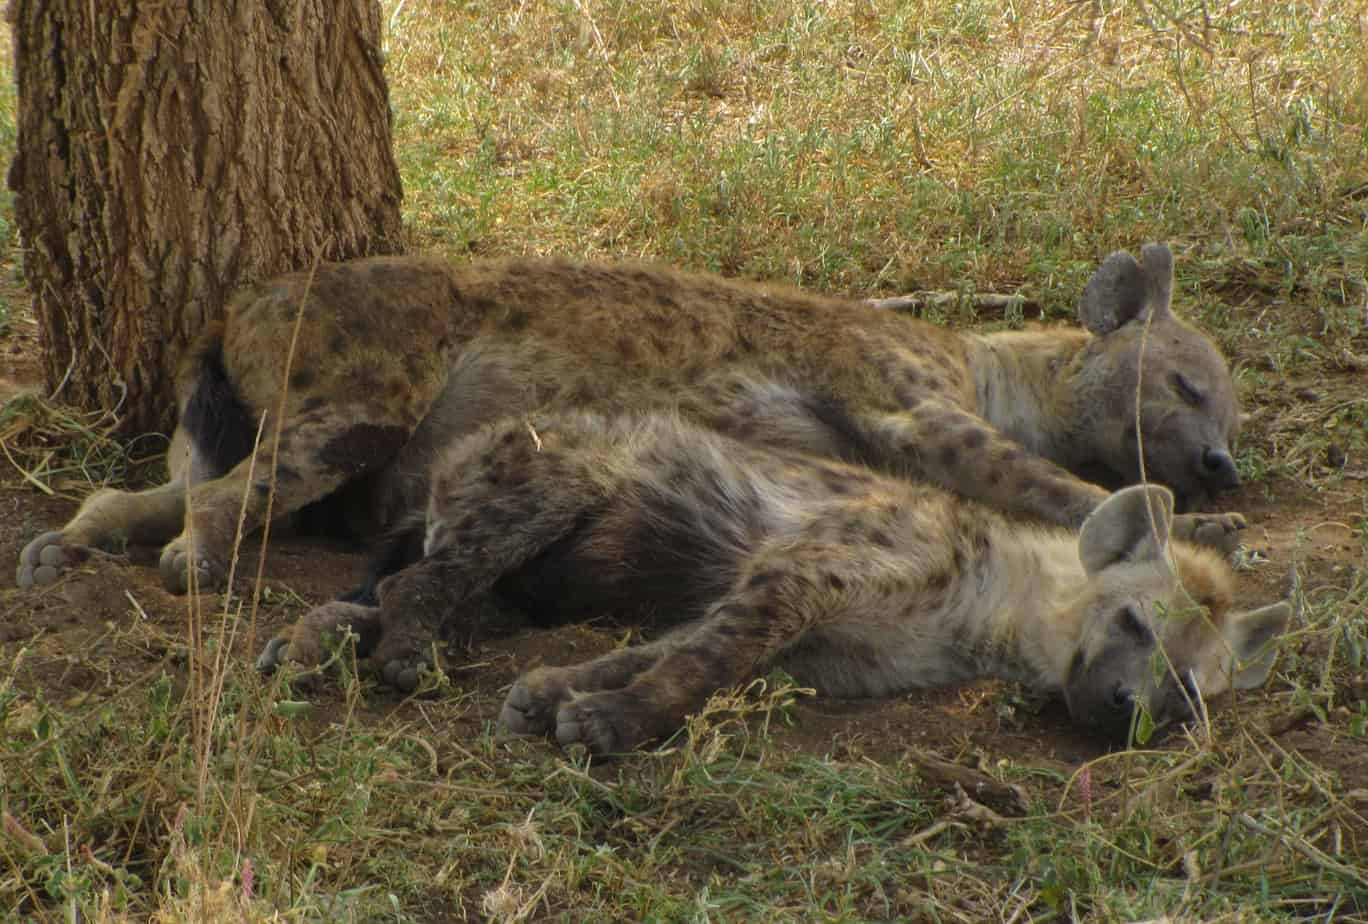 Hyena Sleeping